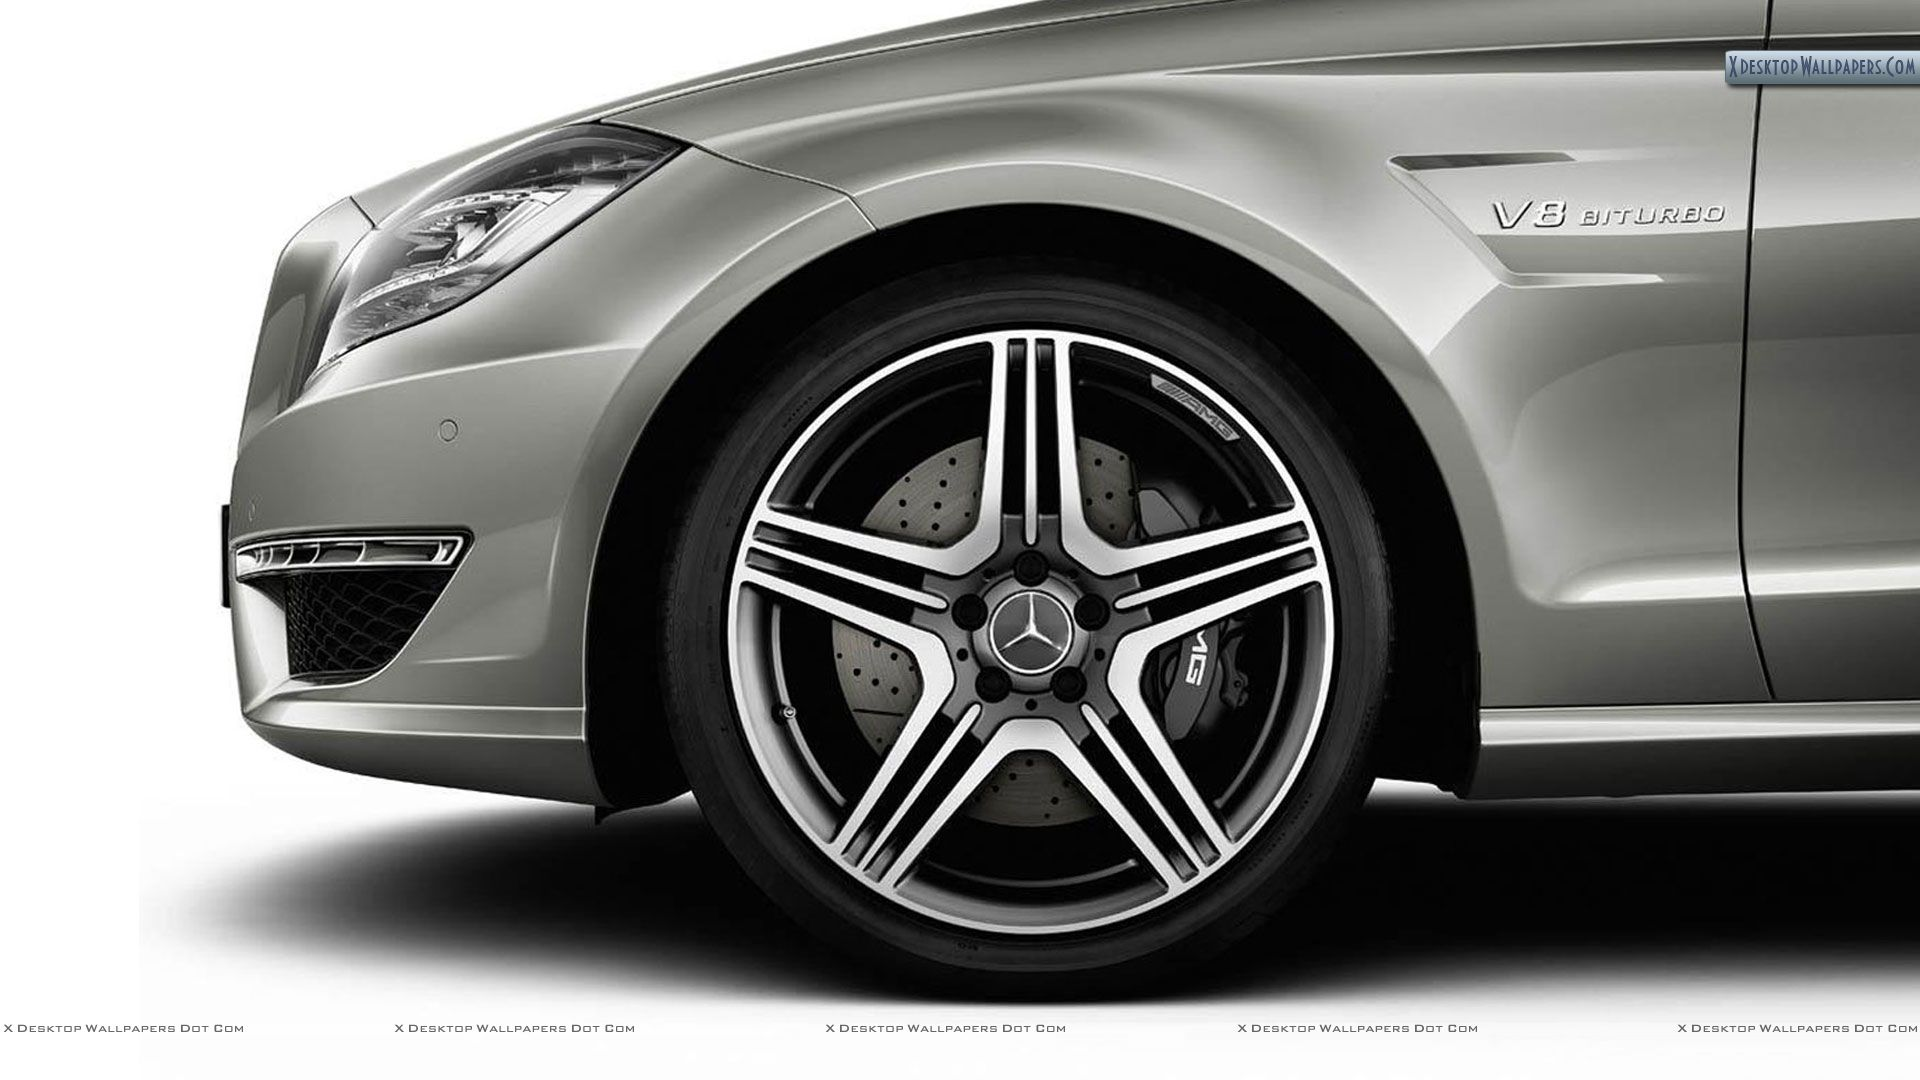 2012 mercedes benz cls63 amg tyre alloy wallpaper for Mercedes benz tyres